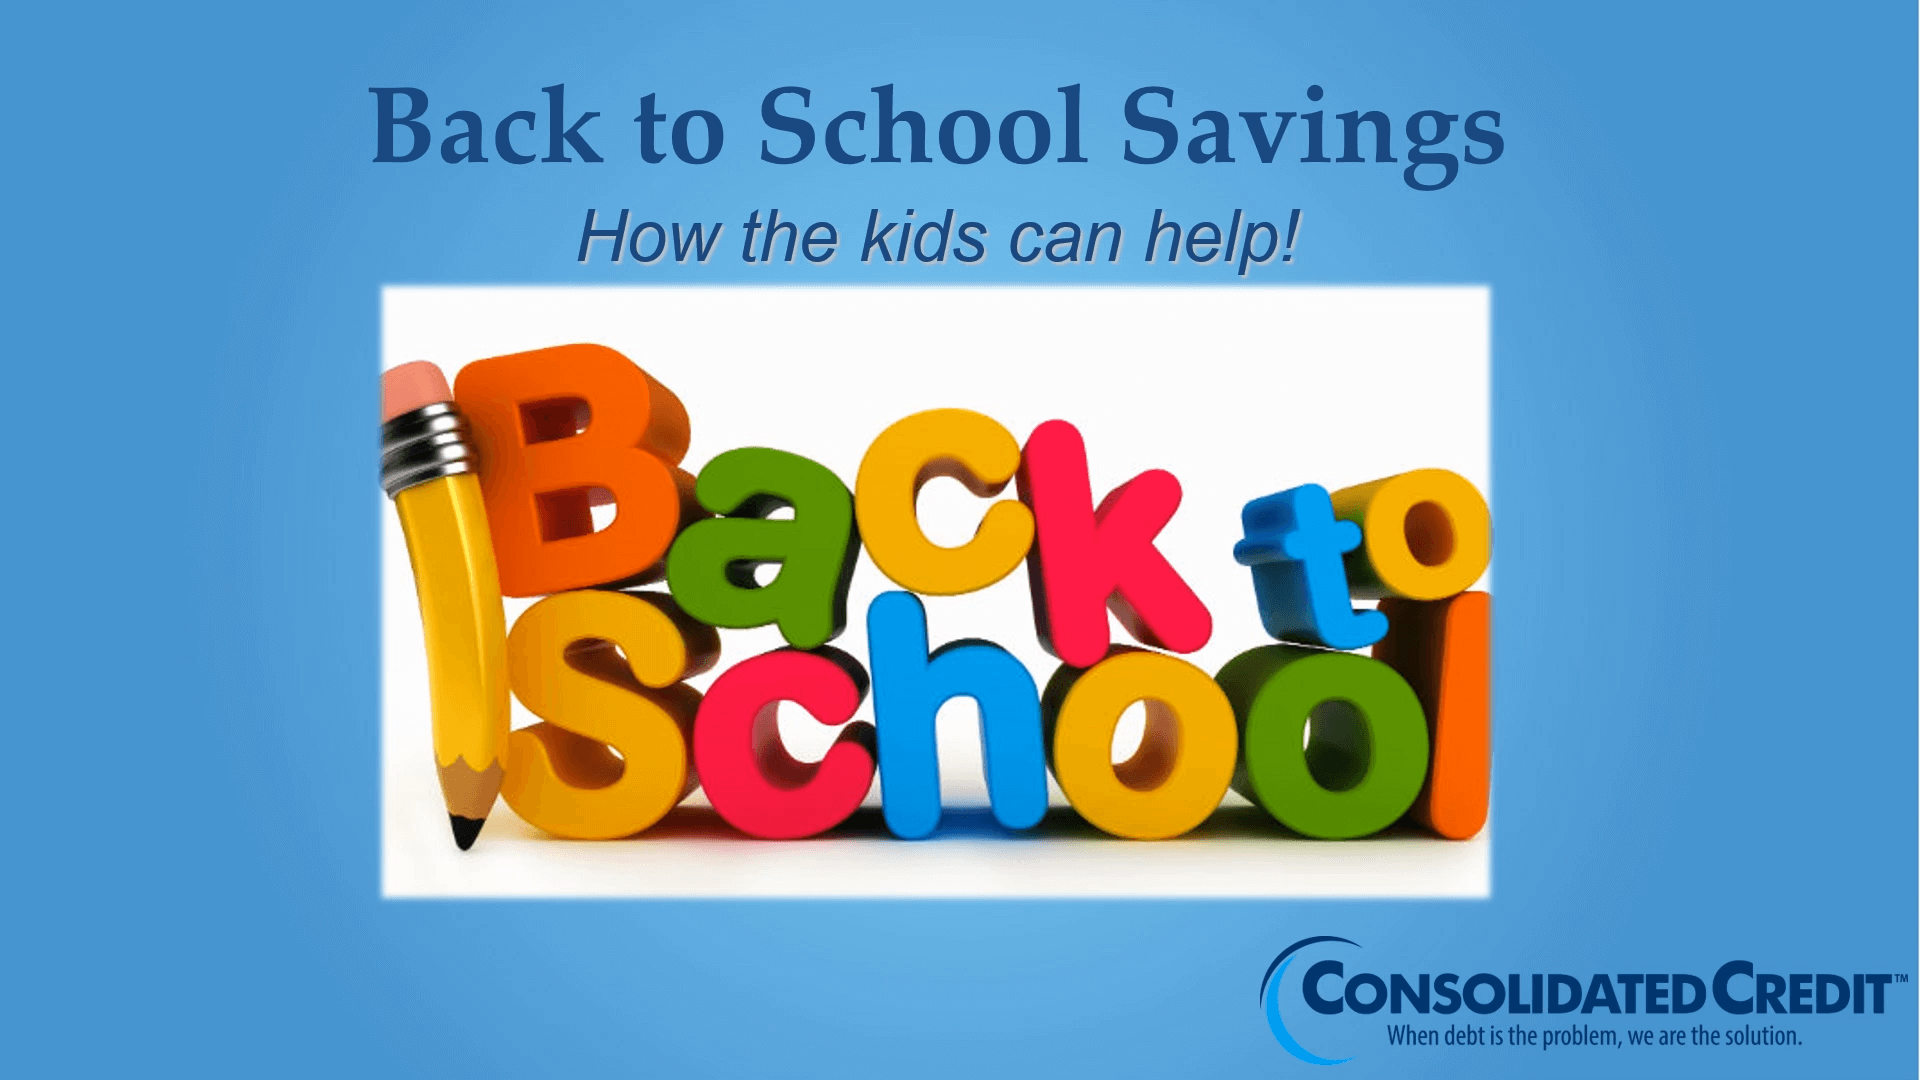 Back to School Savings: How the kids can help